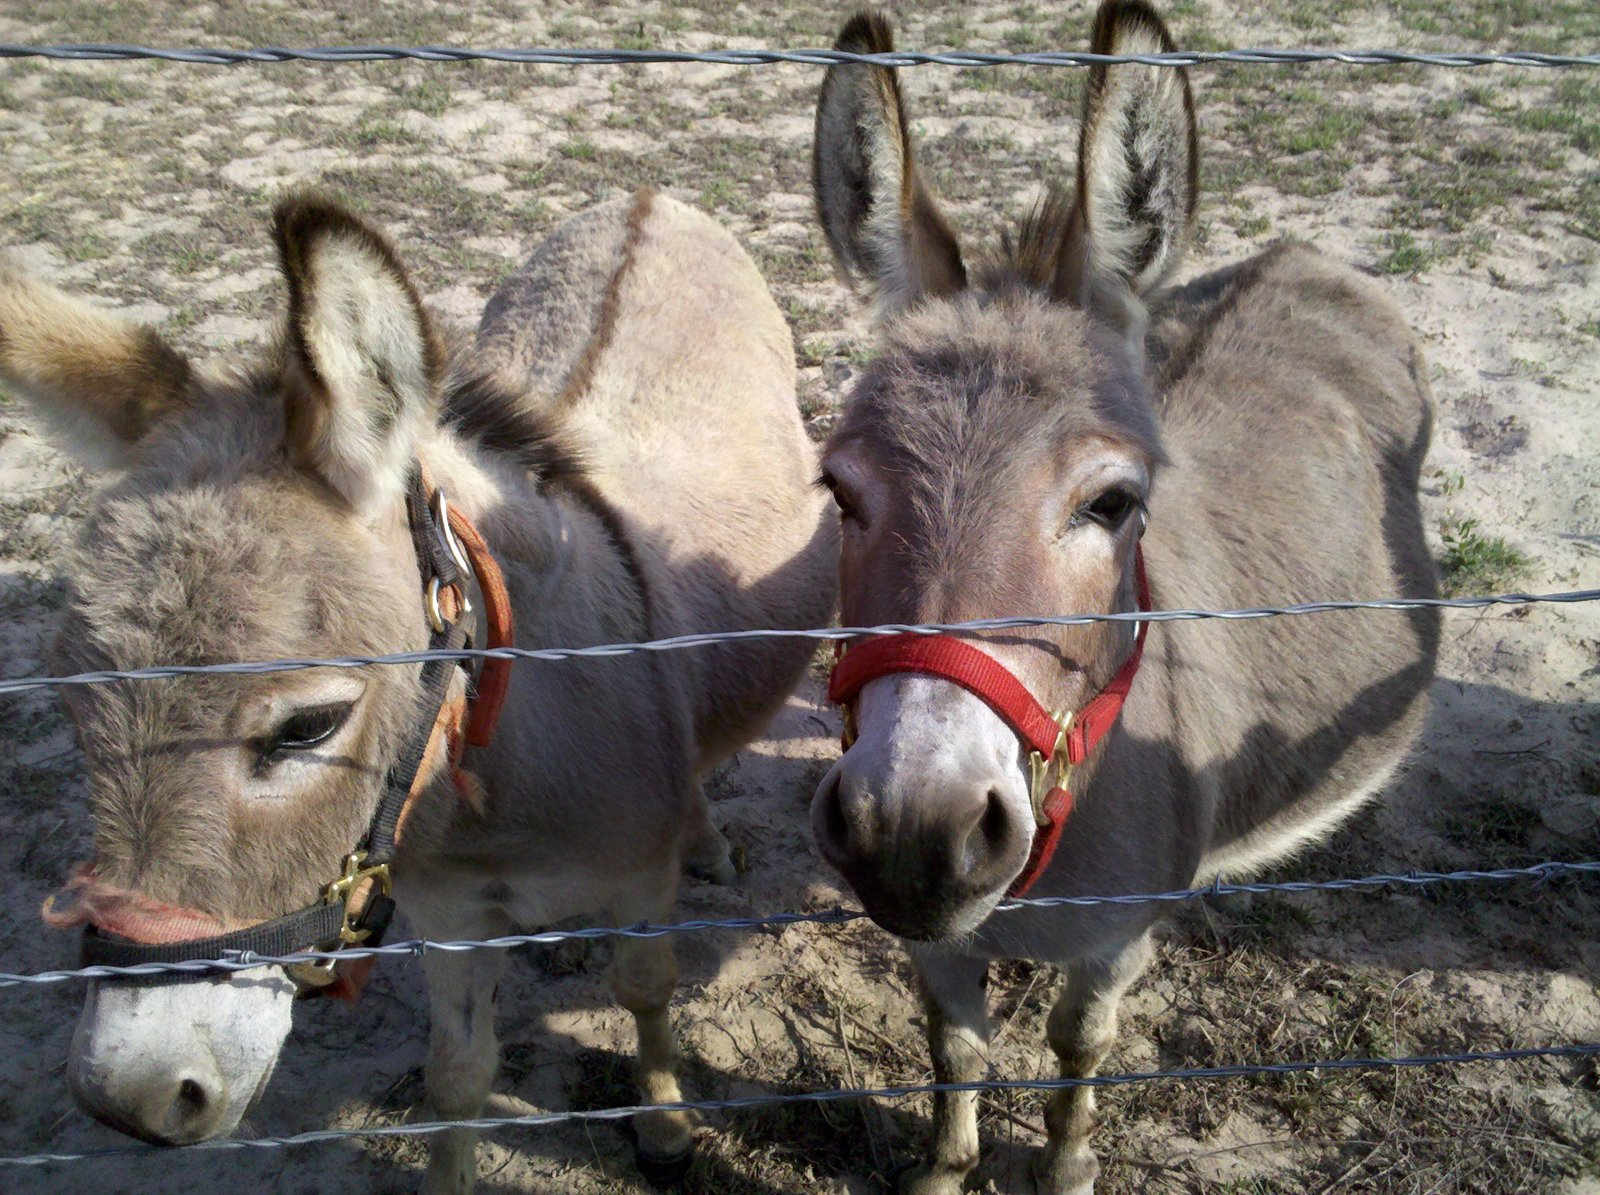 Also on the ranch were several miniature donkeys!  Three Days in Austin, Texas by Miyoko Ohtake